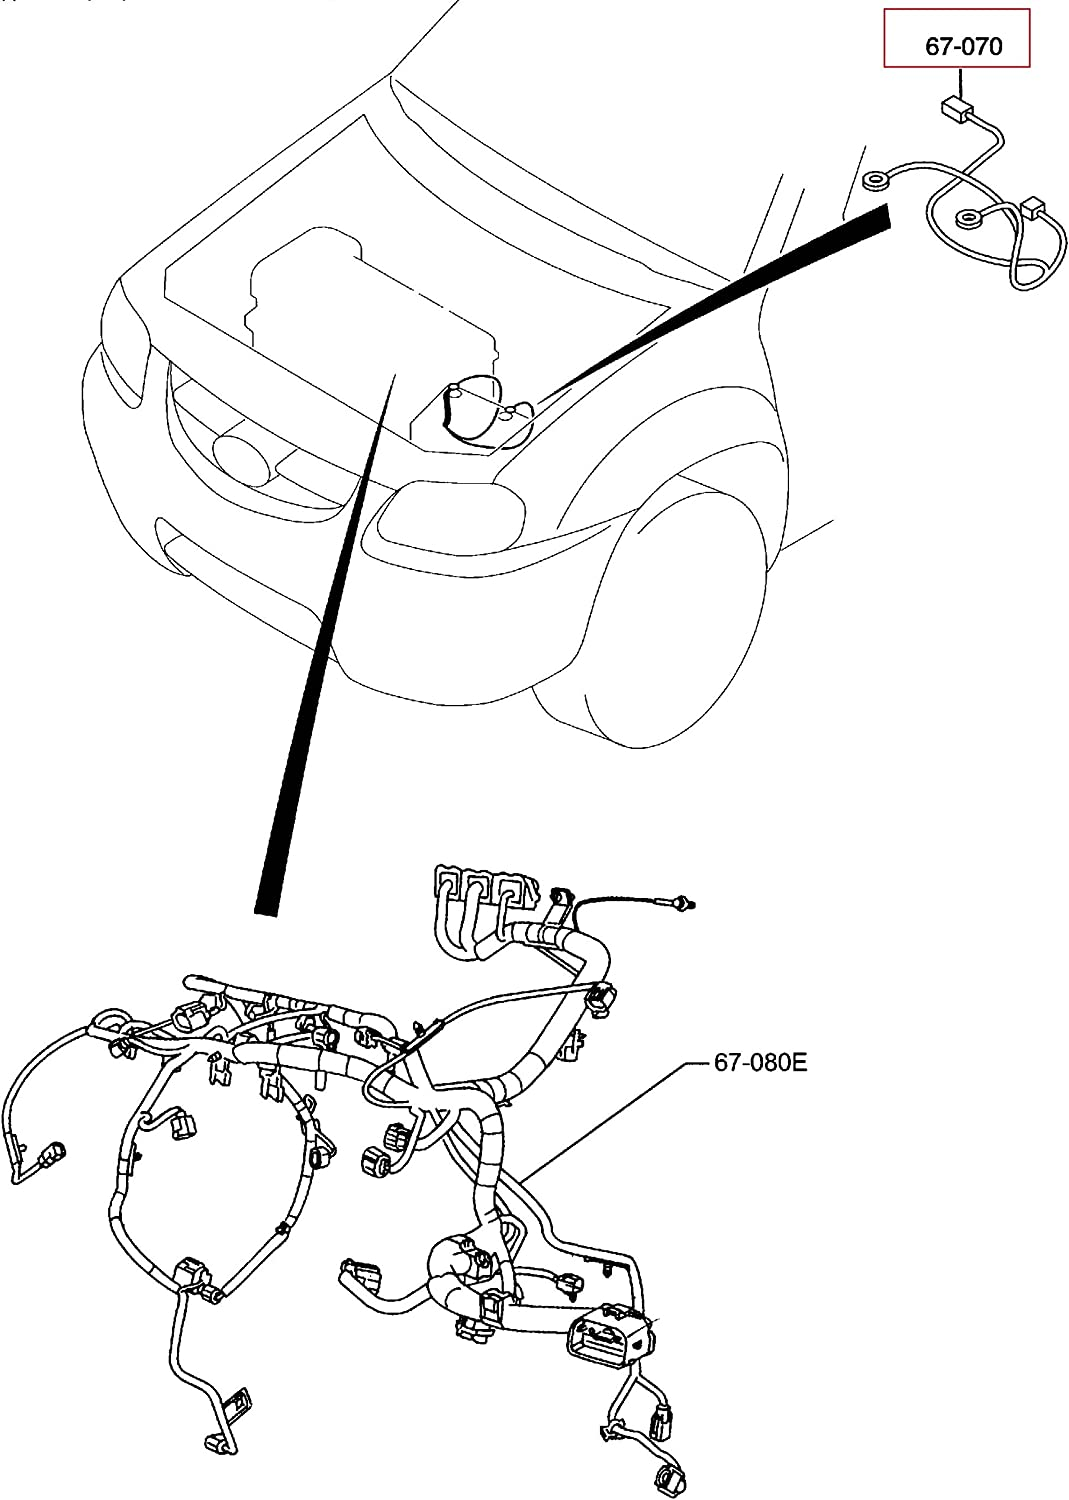 [DIAGRAM_38ZD]  Amazon.com: Genuine Mazda Tribute Engine Harness, Positive Battery Cable  ZZC0-67-070 (2008 - 2011): Automotive | Mazda Tribute Engine Diagram |  | Amazon.com